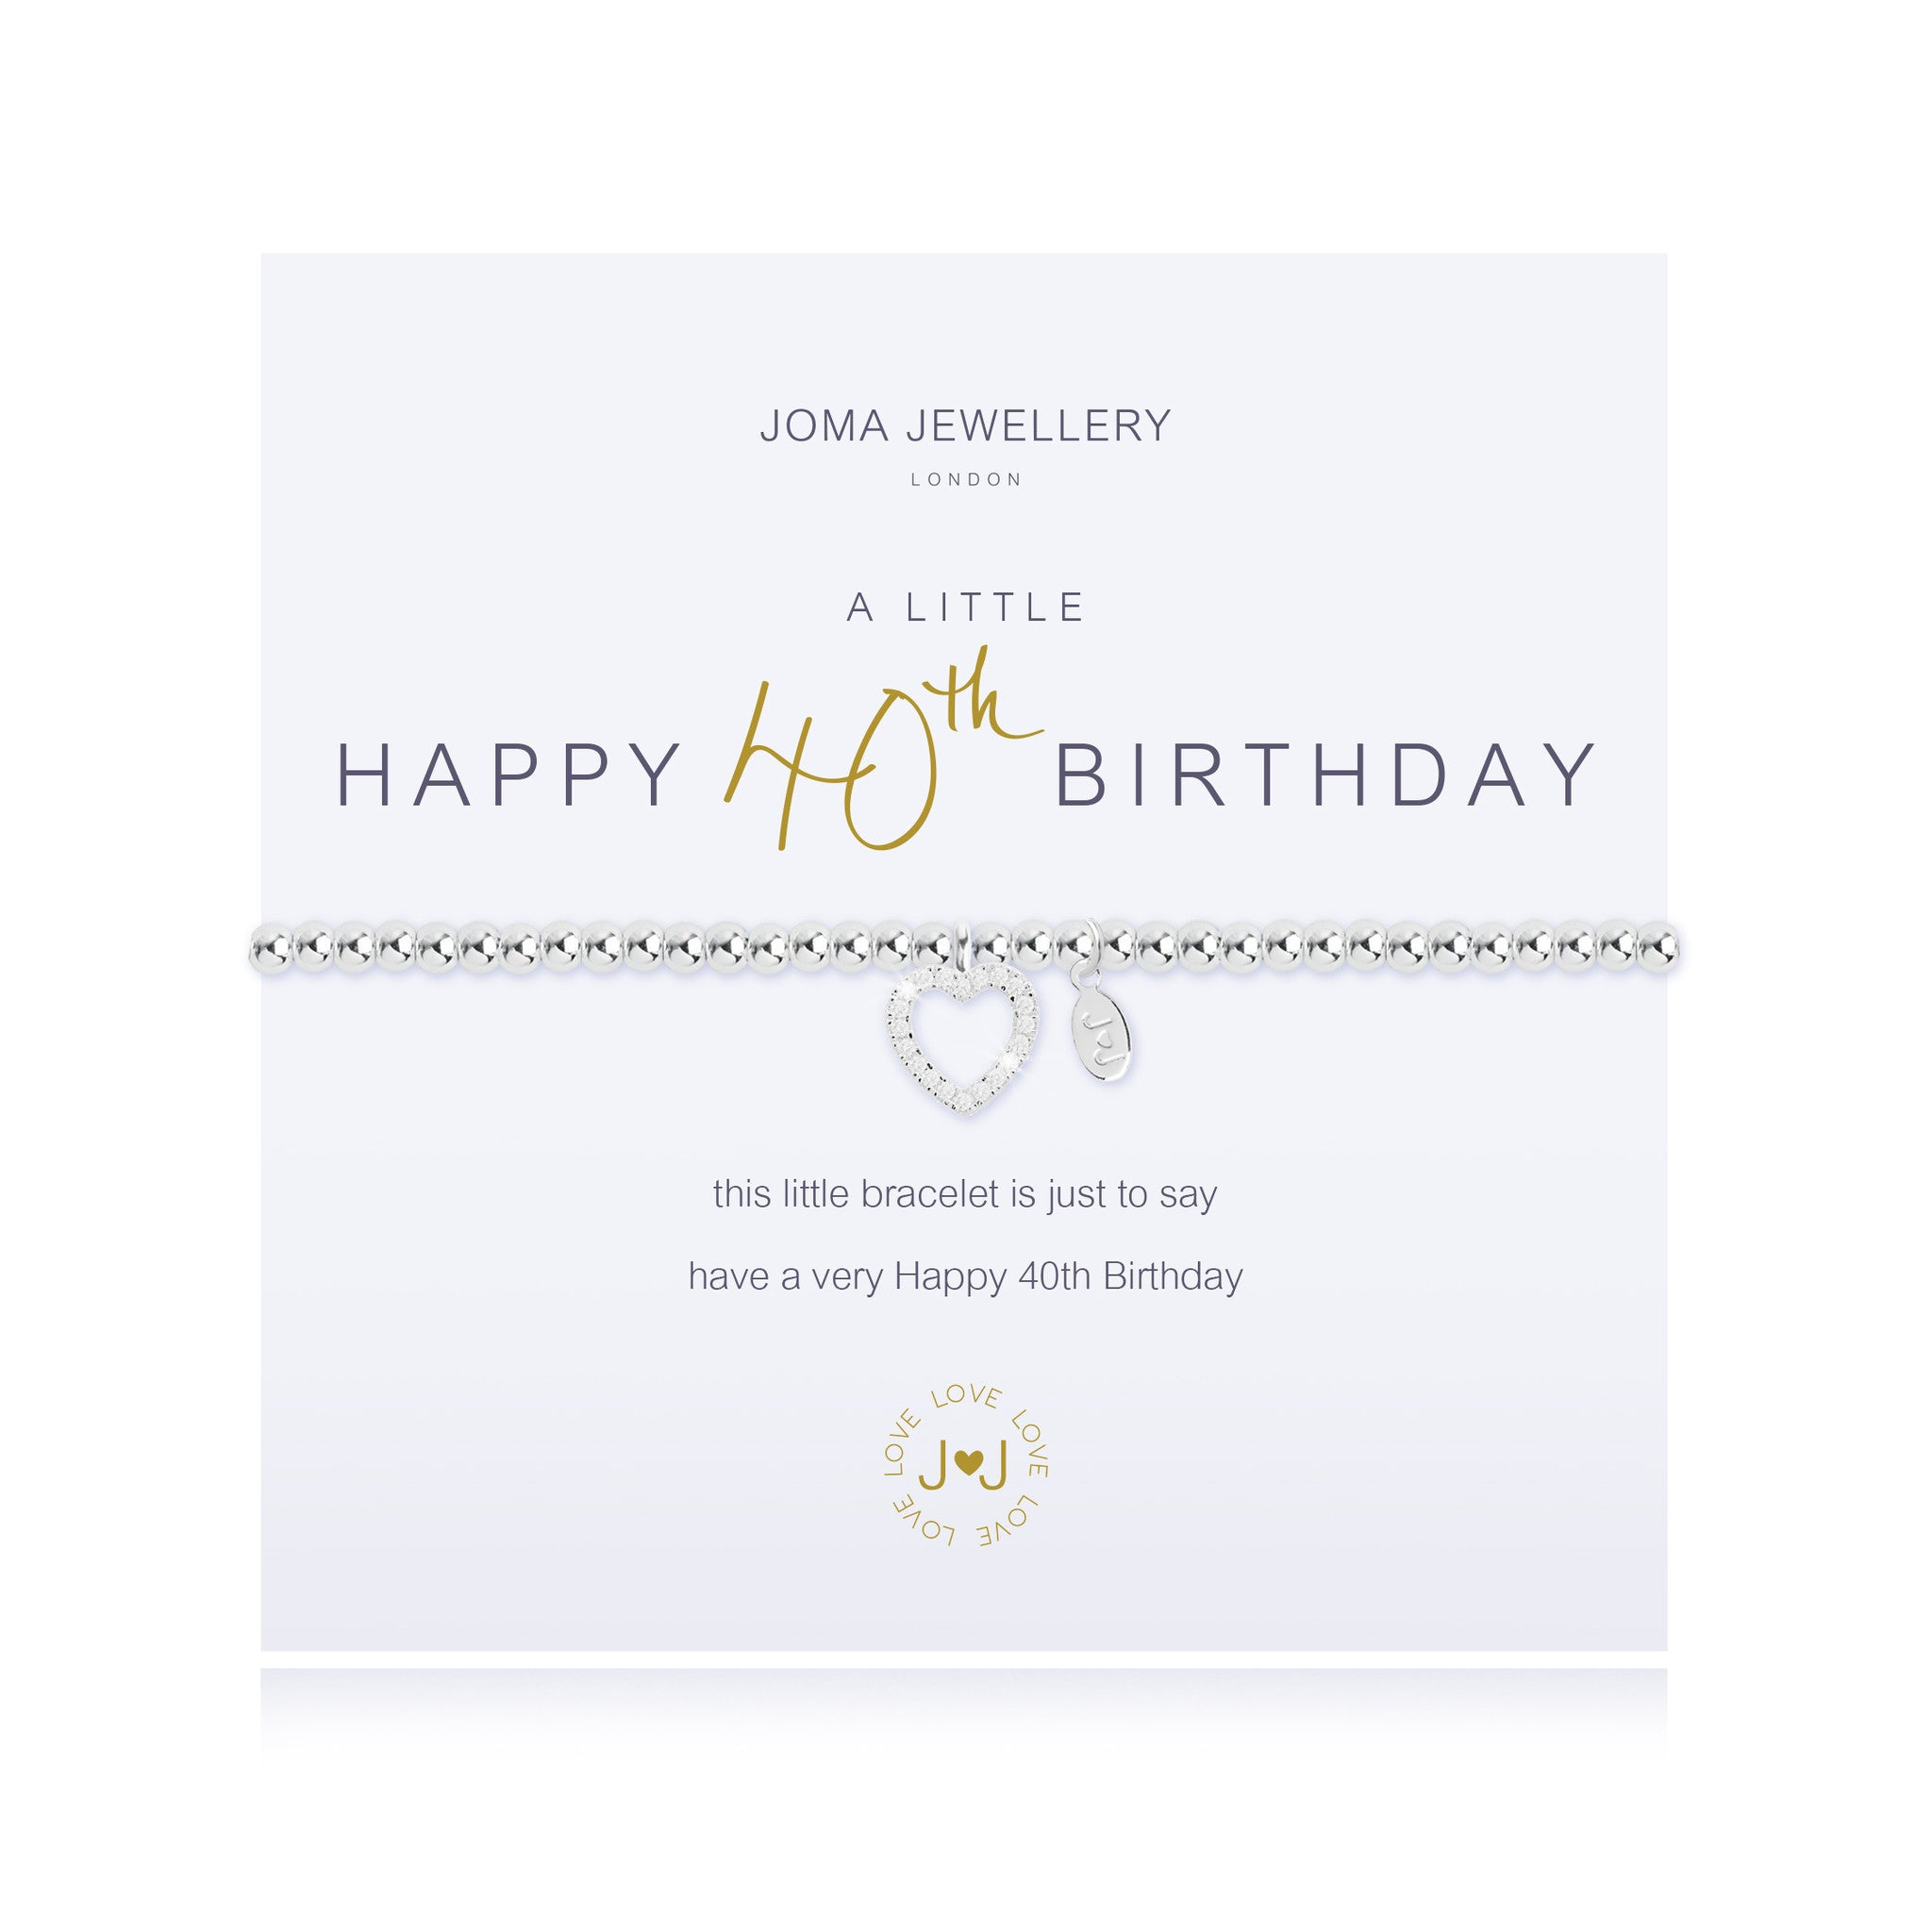 Joma Jewellery - A Little 40th Birthday -2073